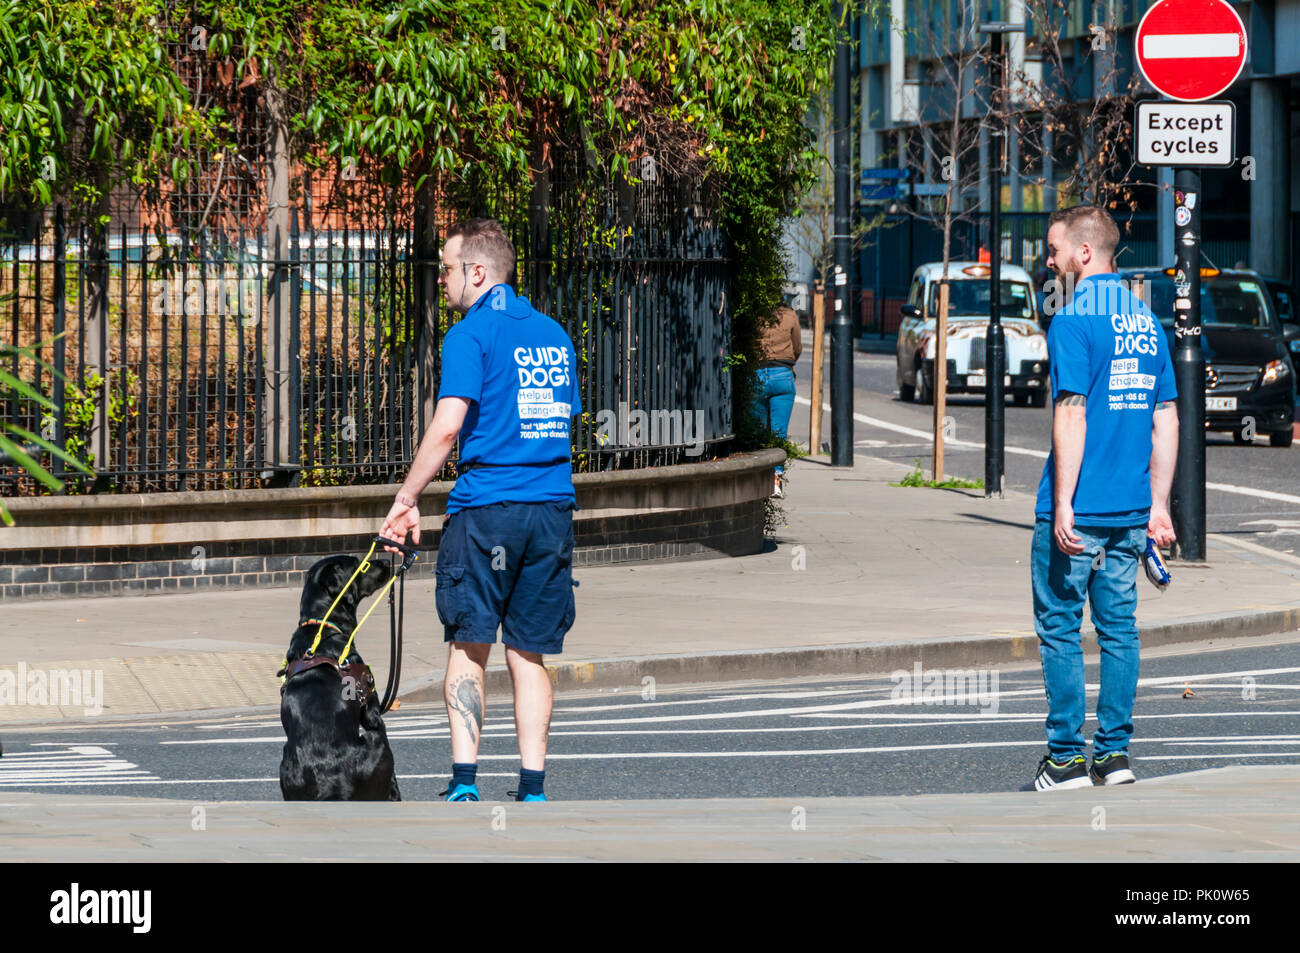 Guide Dogs for the Blind Association guide dog training in central London. - Stock Image